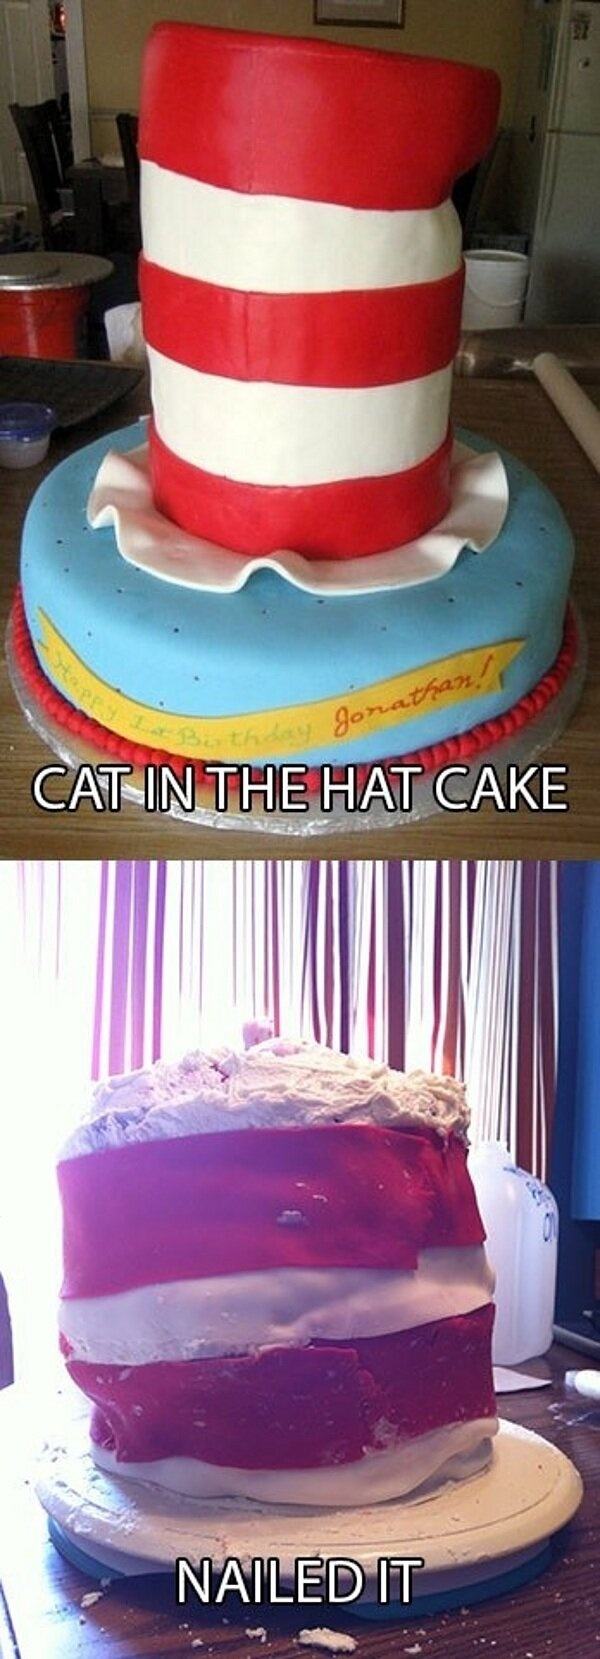 cat in the hat cake...nailed it